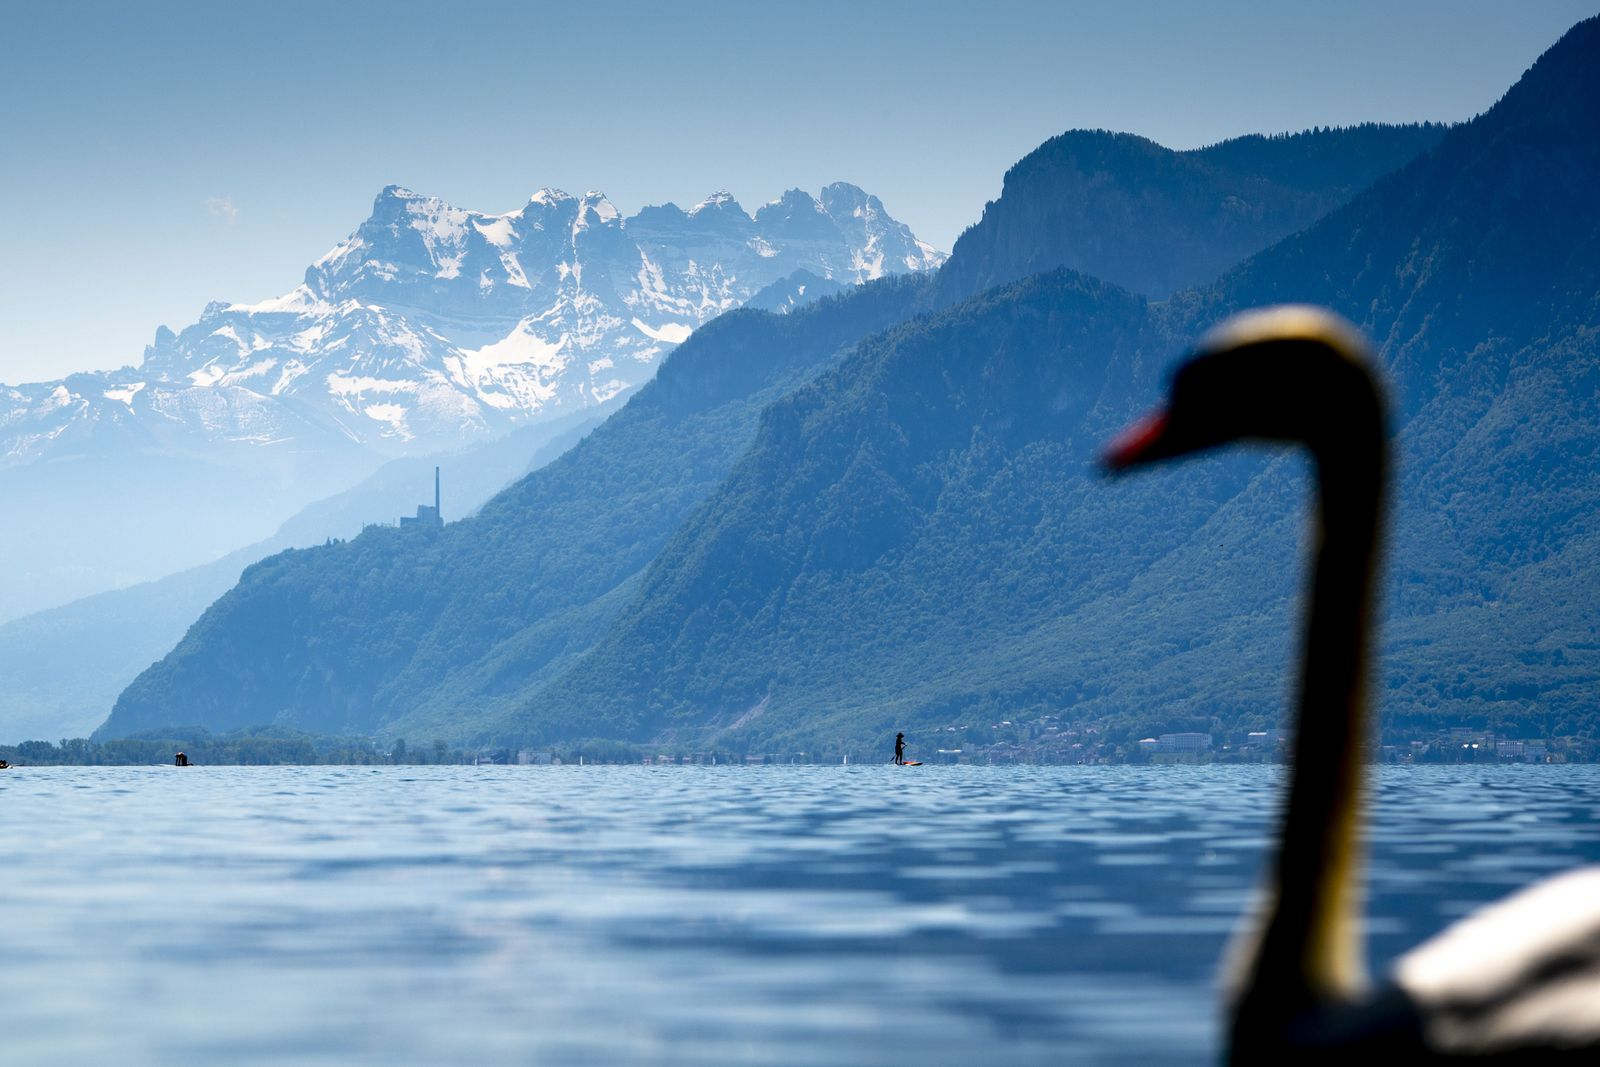 Swiss businesses to reopen with precautionary measures, Vevey, Switzerland - 09 May 2020